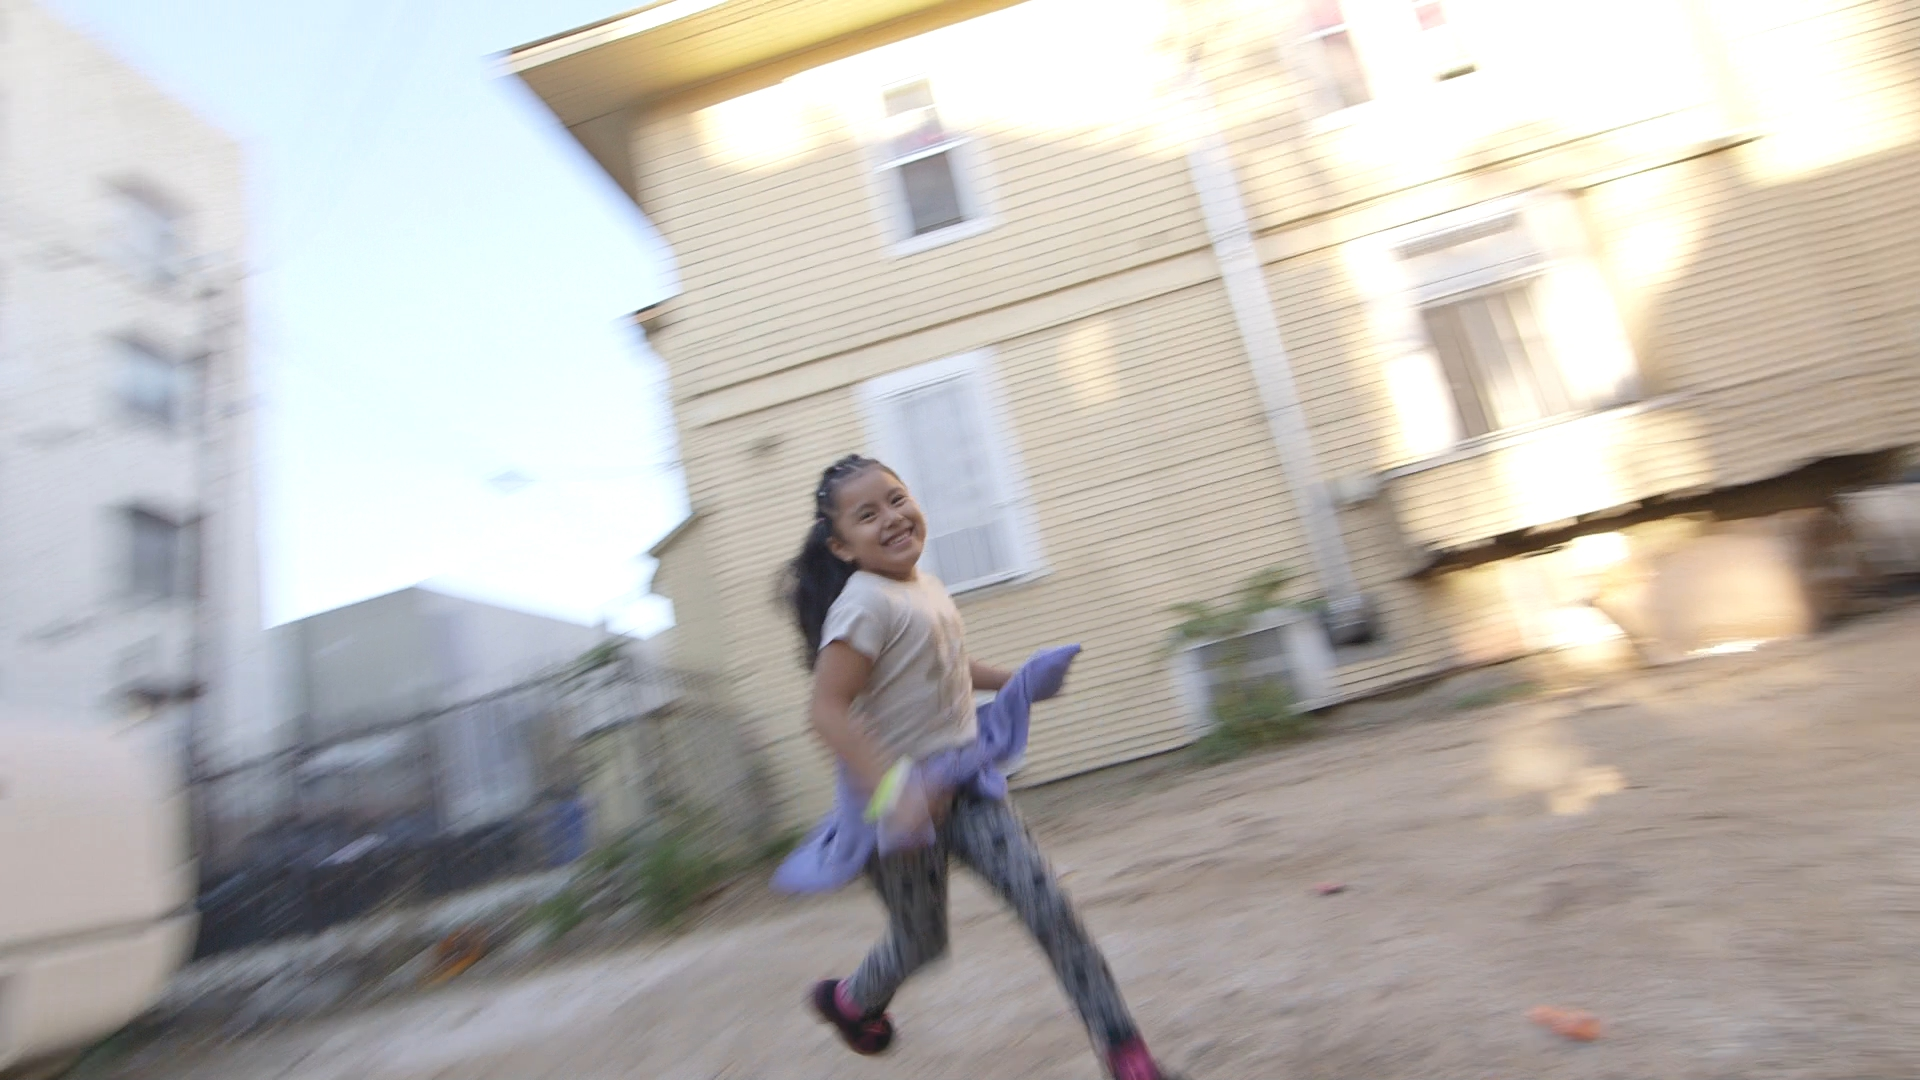 dox-video-production-austin-work-kids-running.jpg